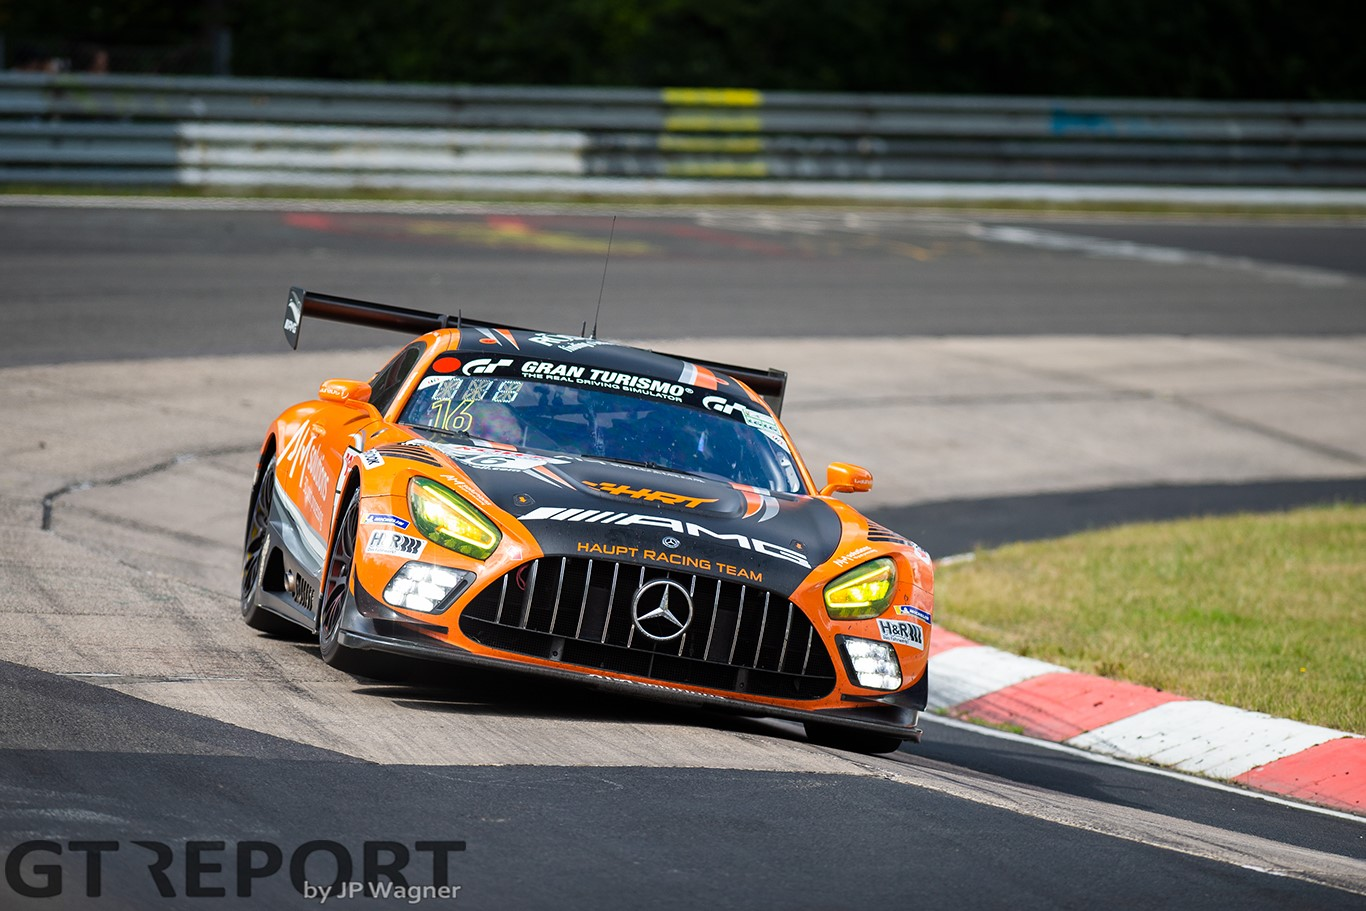 VLN2 race report: Haupt Racing Team makes it stick for first-ever victory